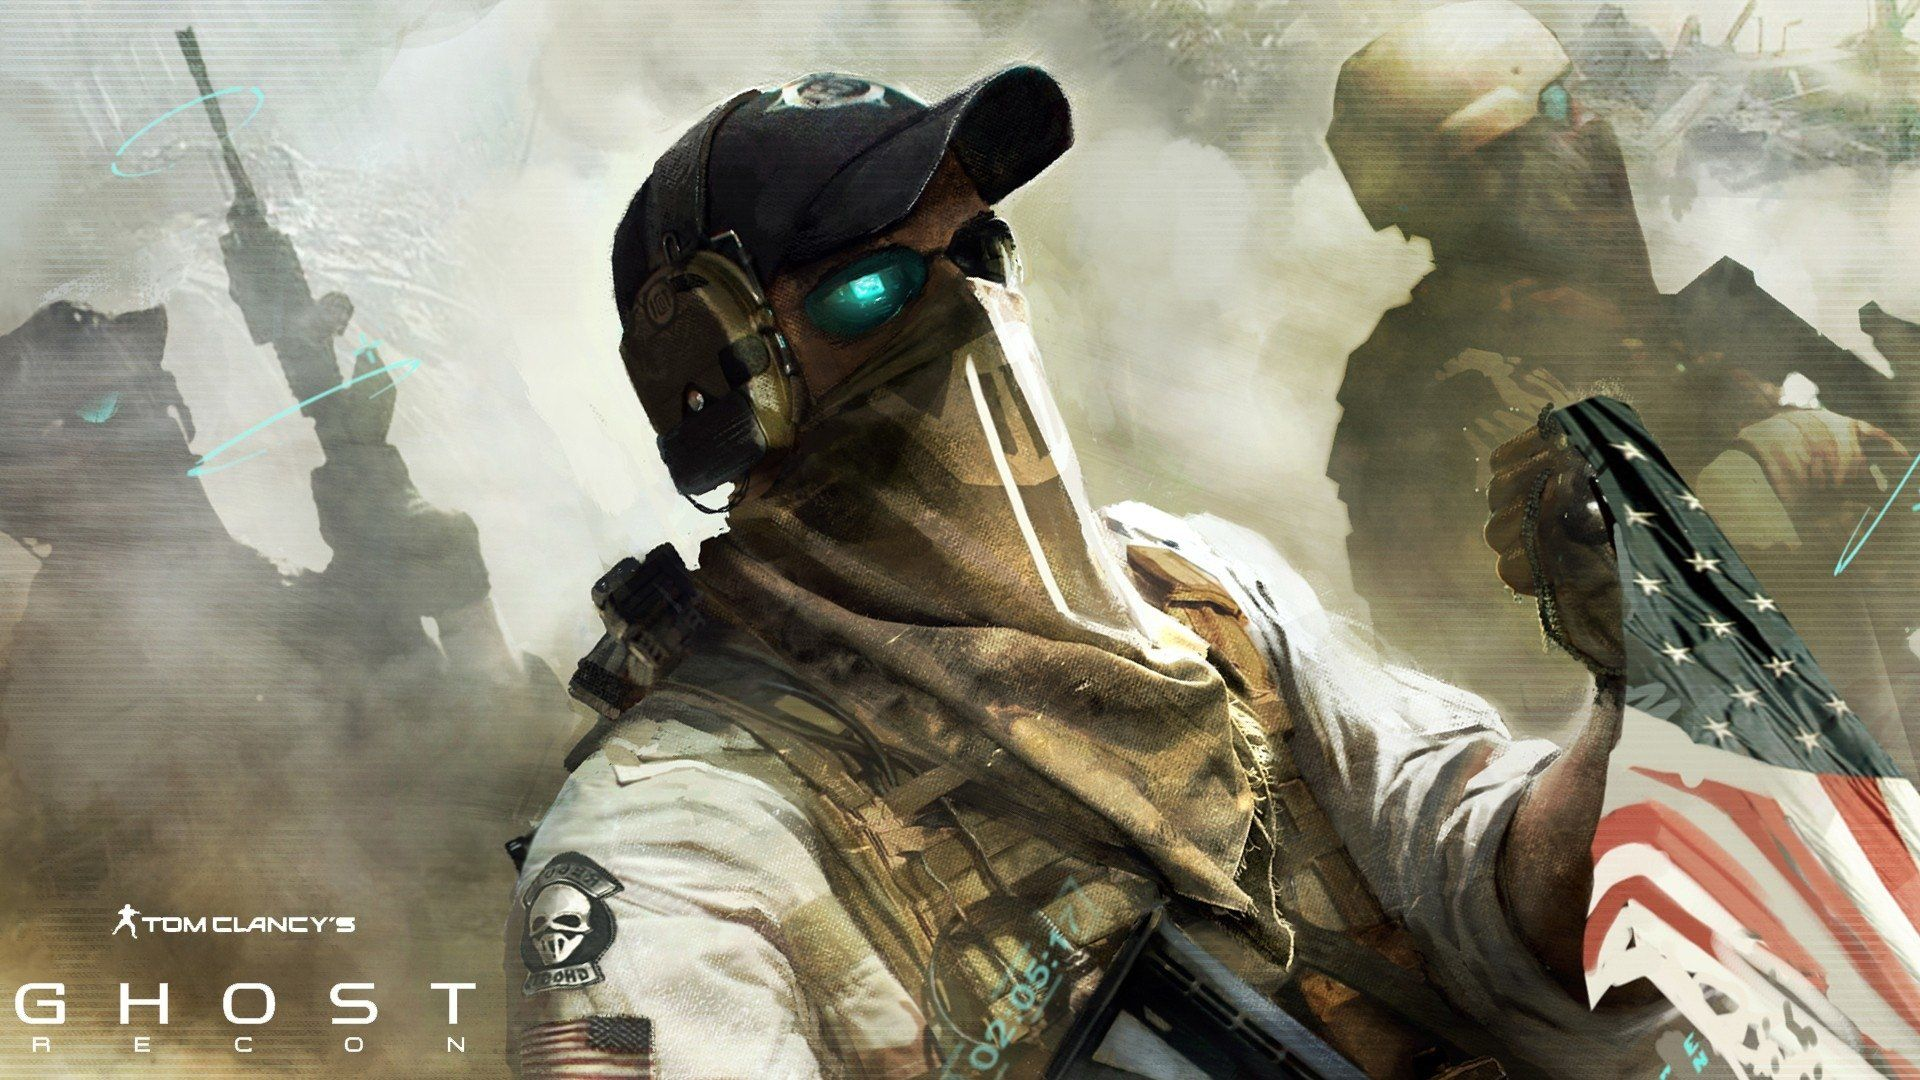 Ghost Recon Future Soldier Wallpapers - Top Free Ghost Recon Future